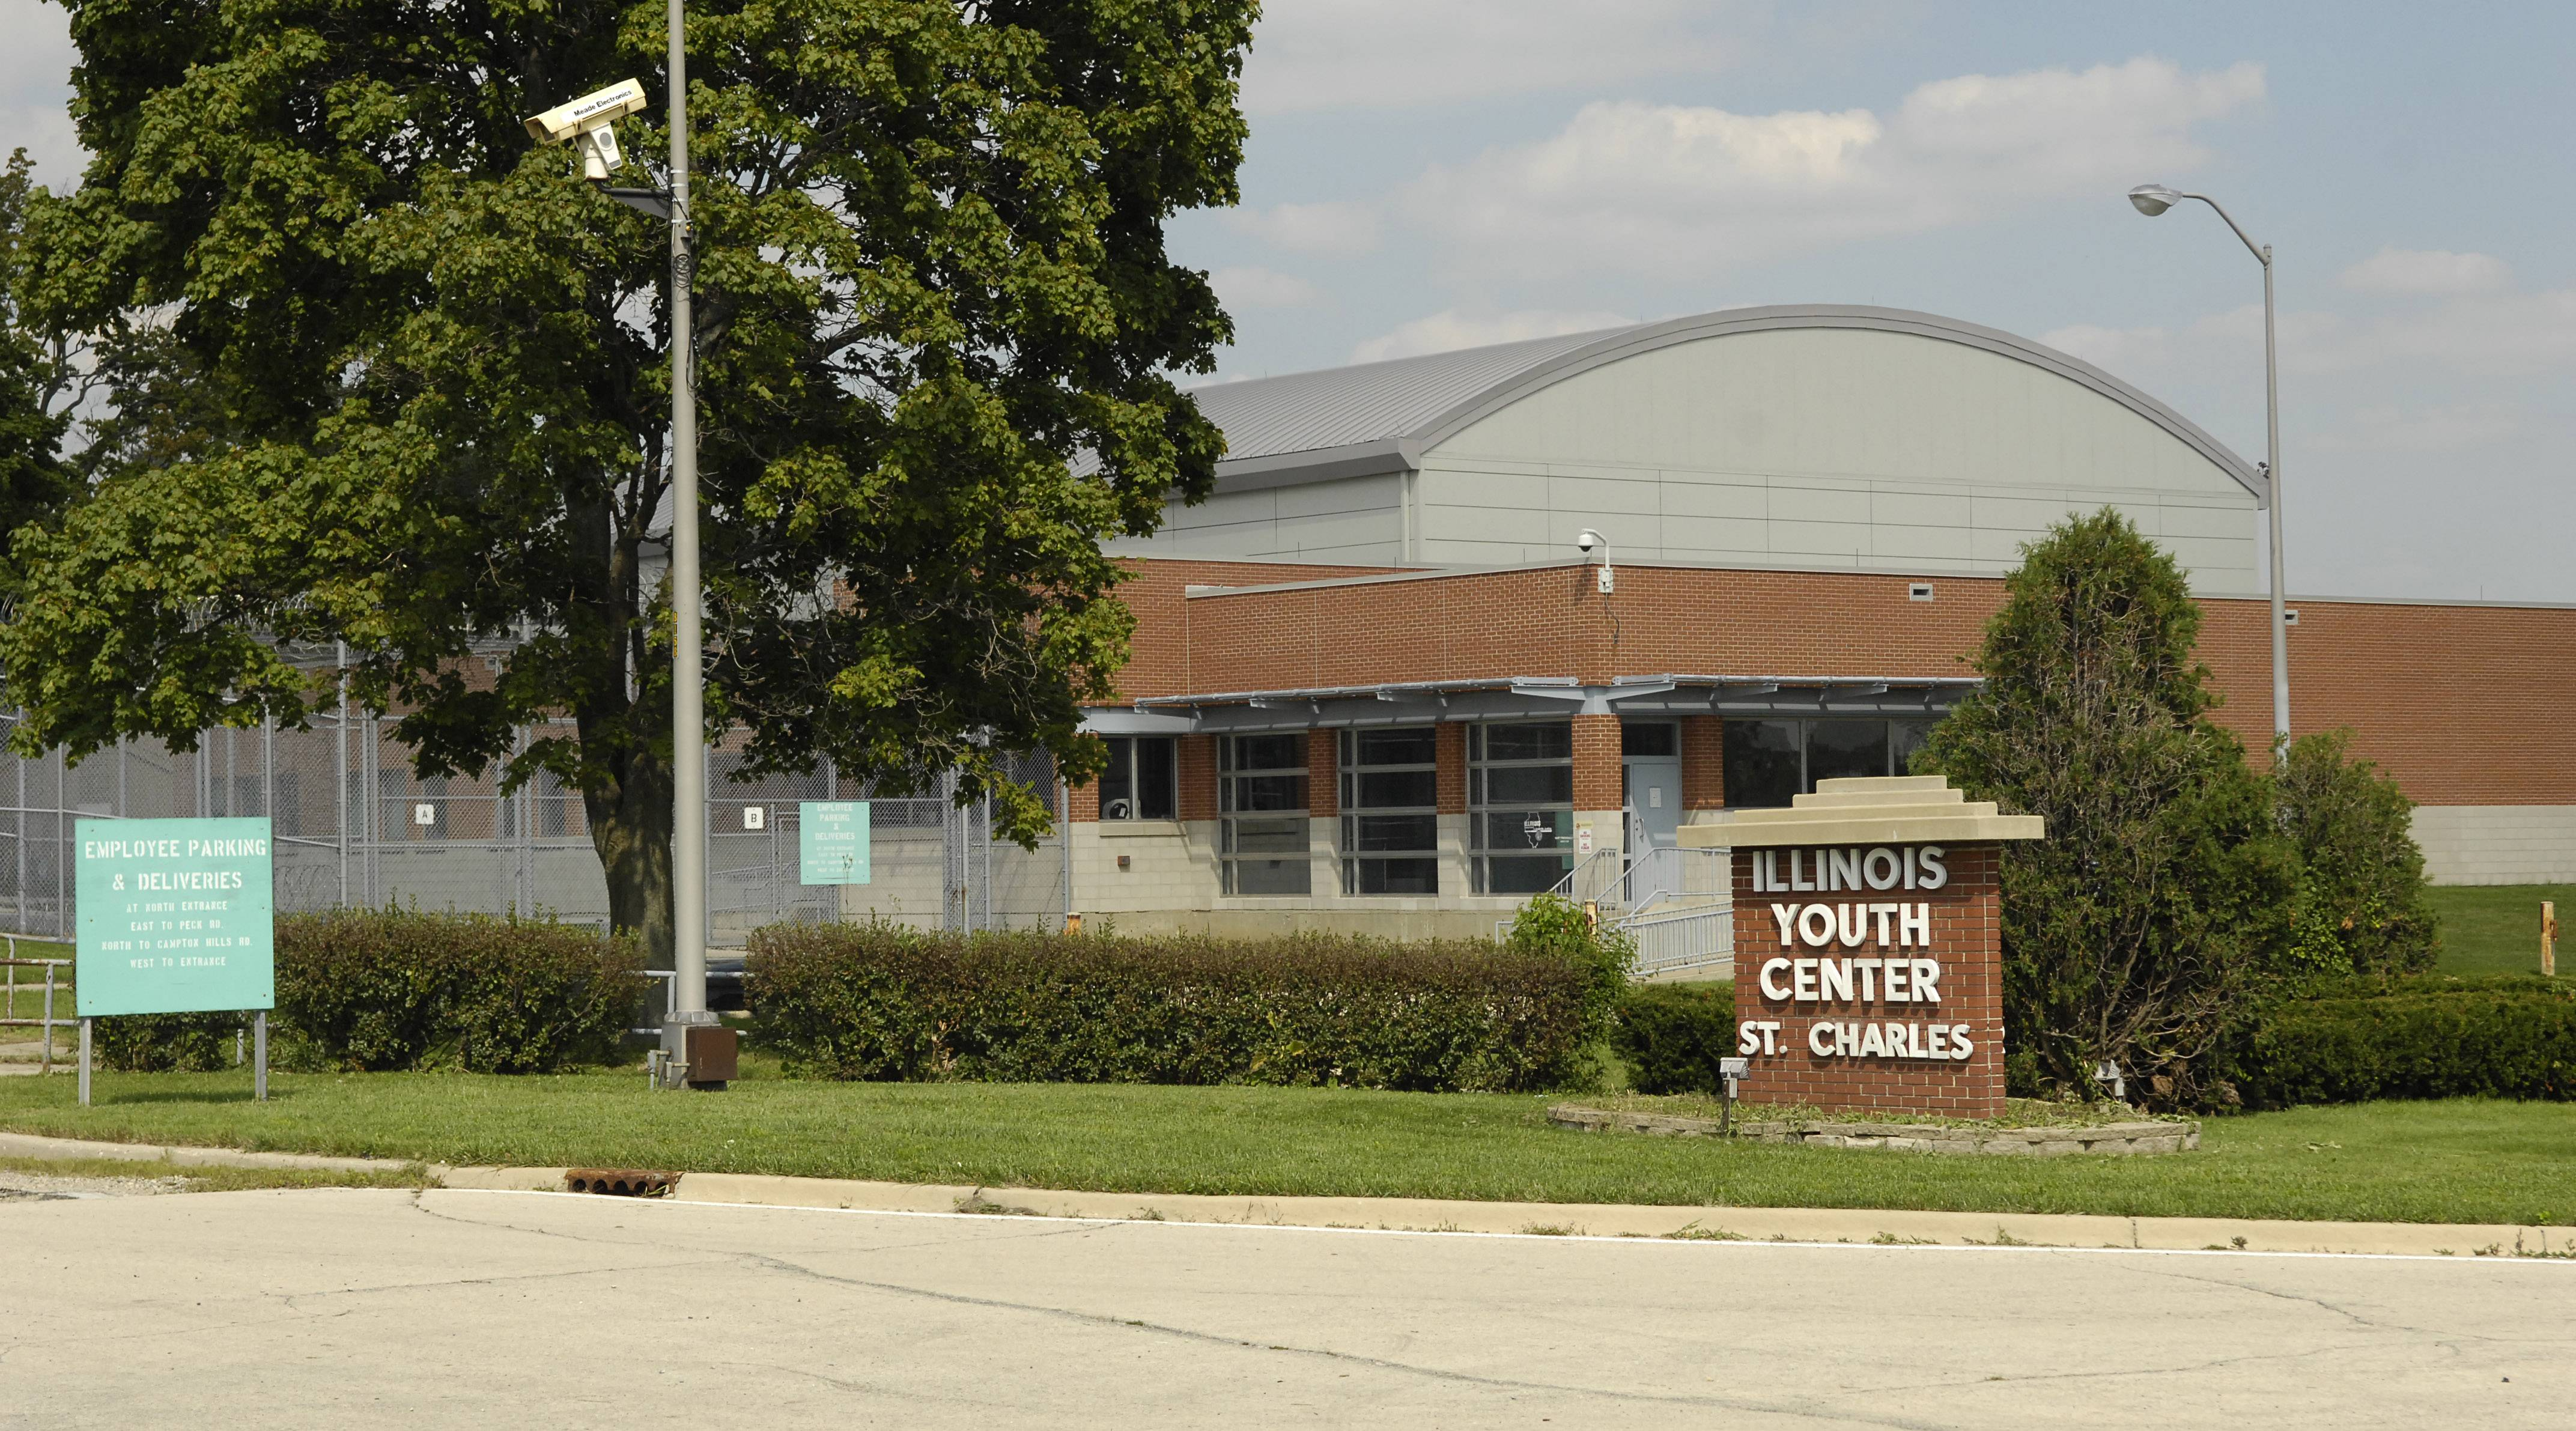 The Illinois Youth Center in St. Charles.